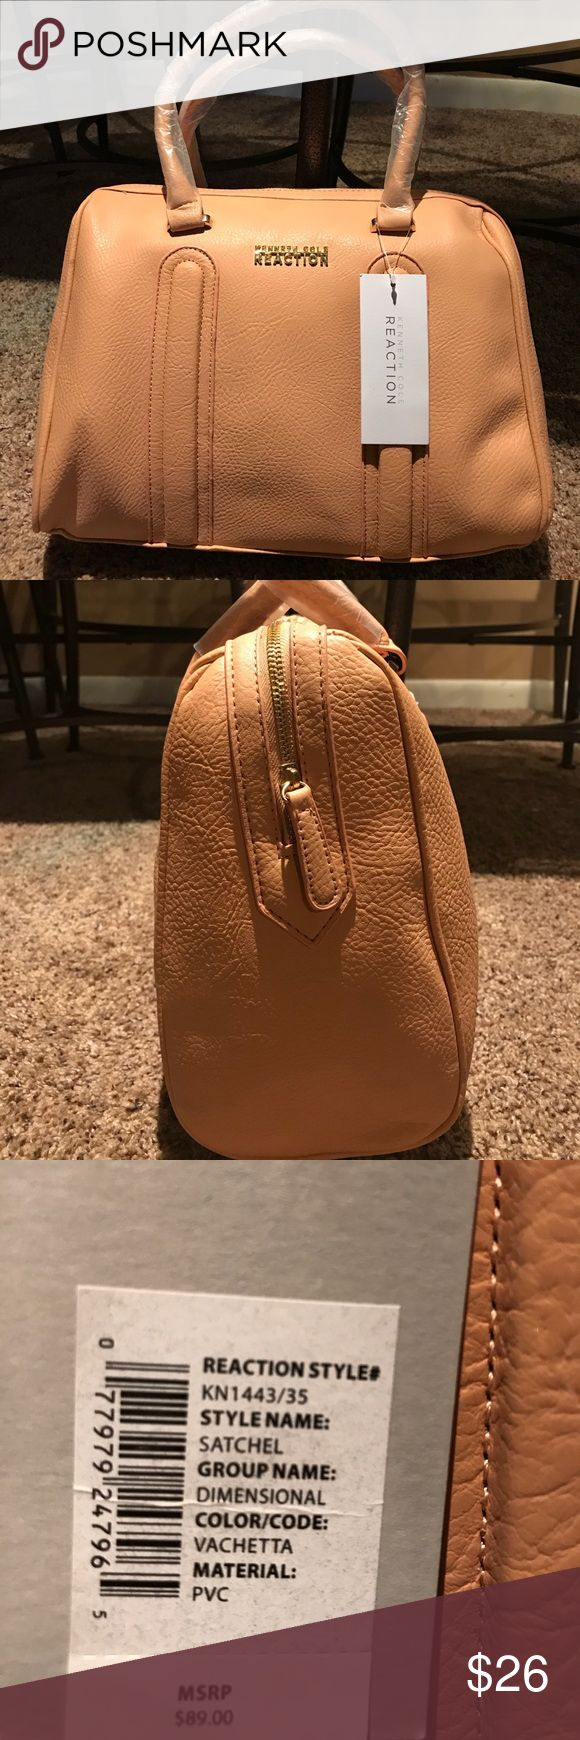 Kenneth Cole Satchel in a very pretty peach color Brand new very pretty purse - color code Vachetta  - material PVC Kenneth Cole Reaction Bags Satchels